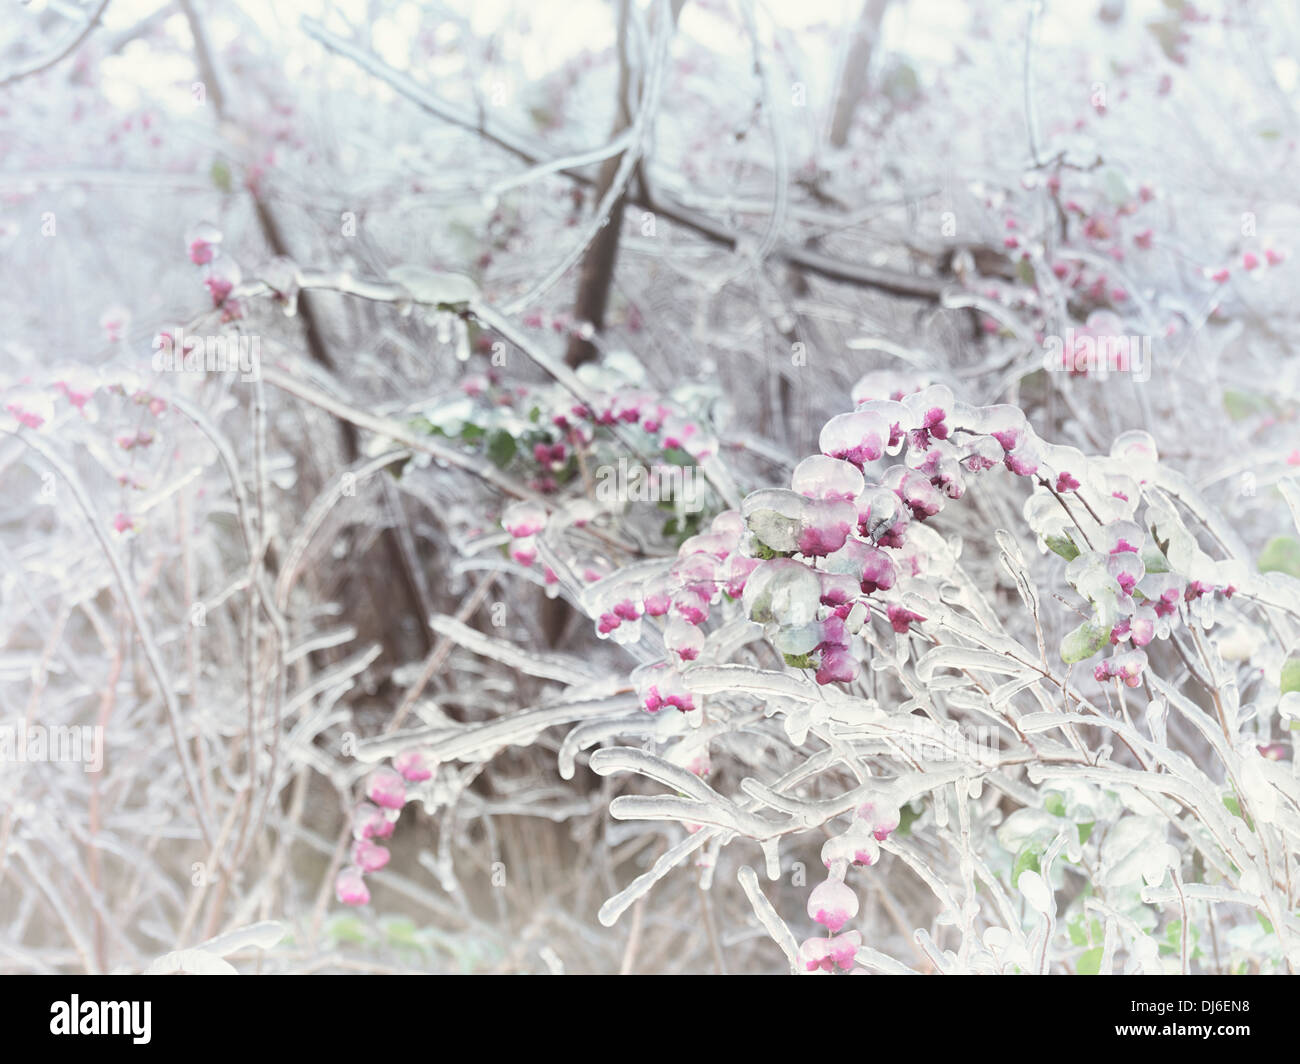 Covered with ice shrub branches and berries, abstract closeup frozen nature scenery - Stock Image